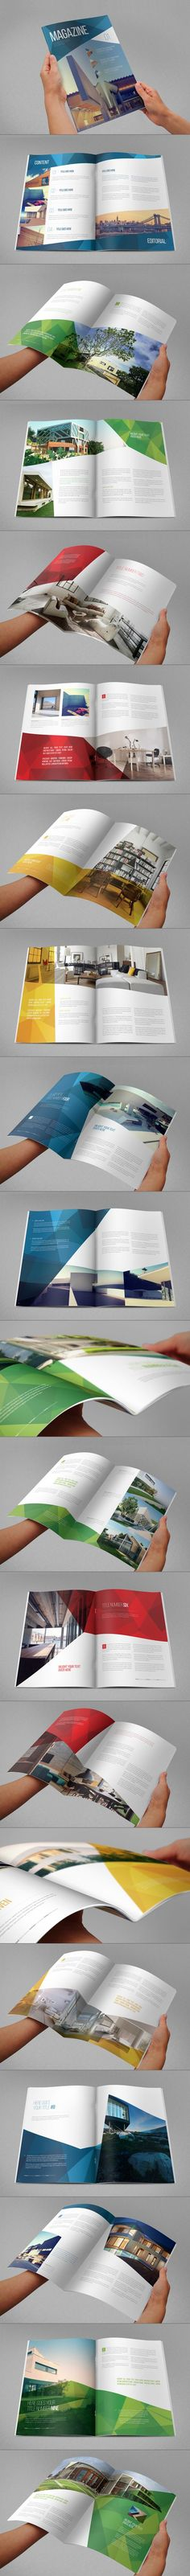 Modern Architecture Magazine. Download here: http://graphicriver.net/item/modern-architecture-magazine/7717553?ref=abradesign #magazine #design